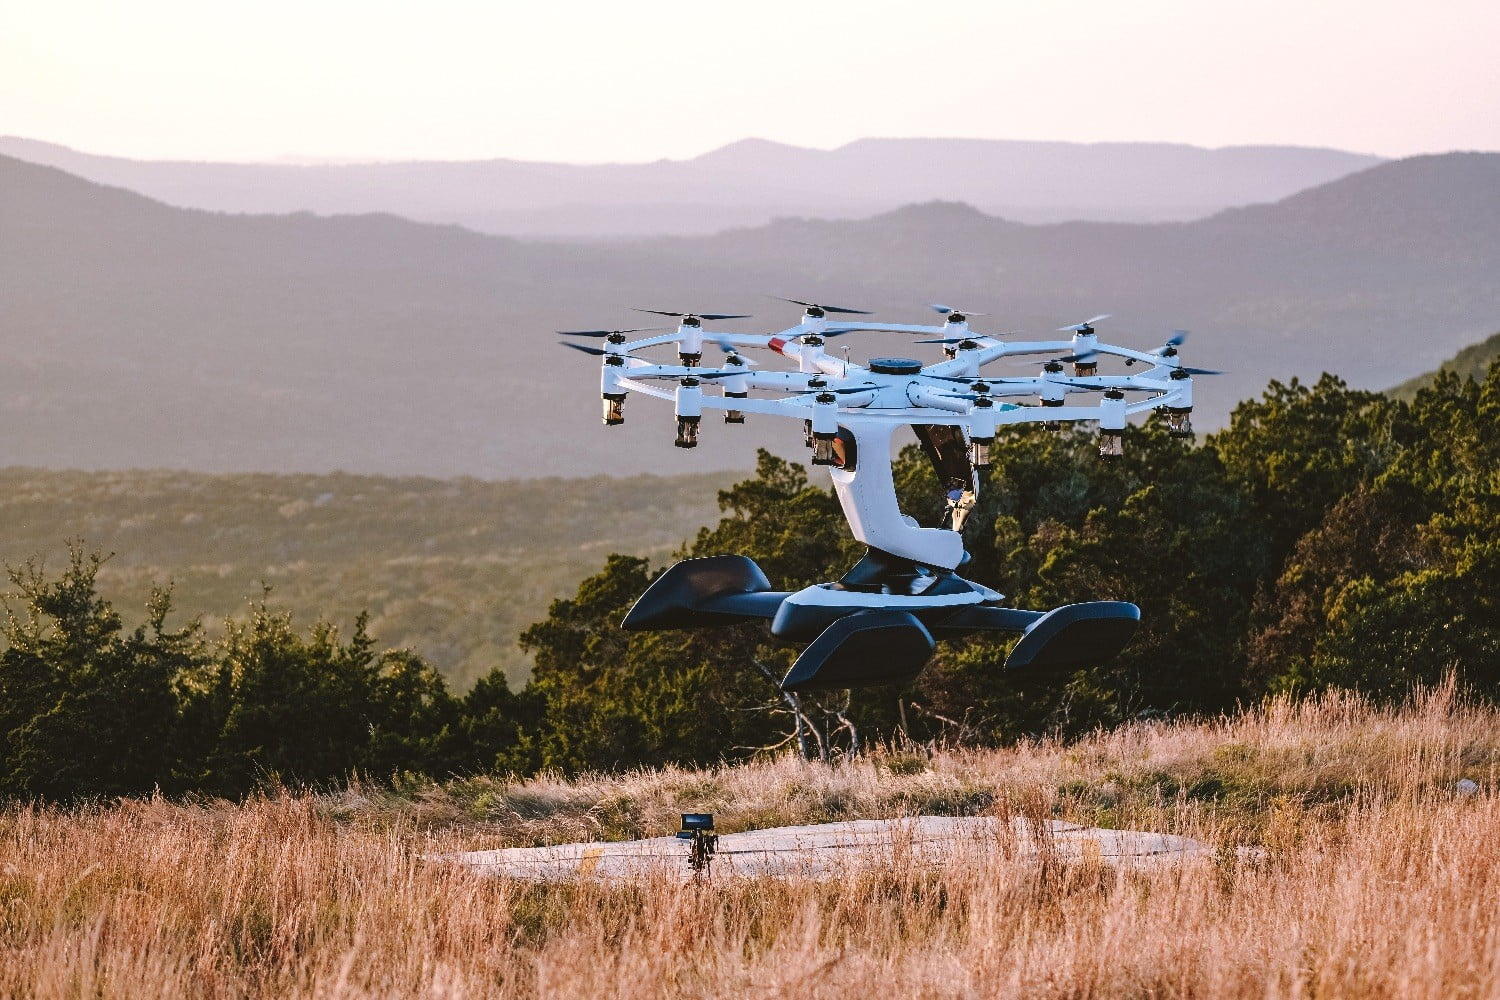 Thrill-seekers will soon be able to pilot themselves in a giant drone